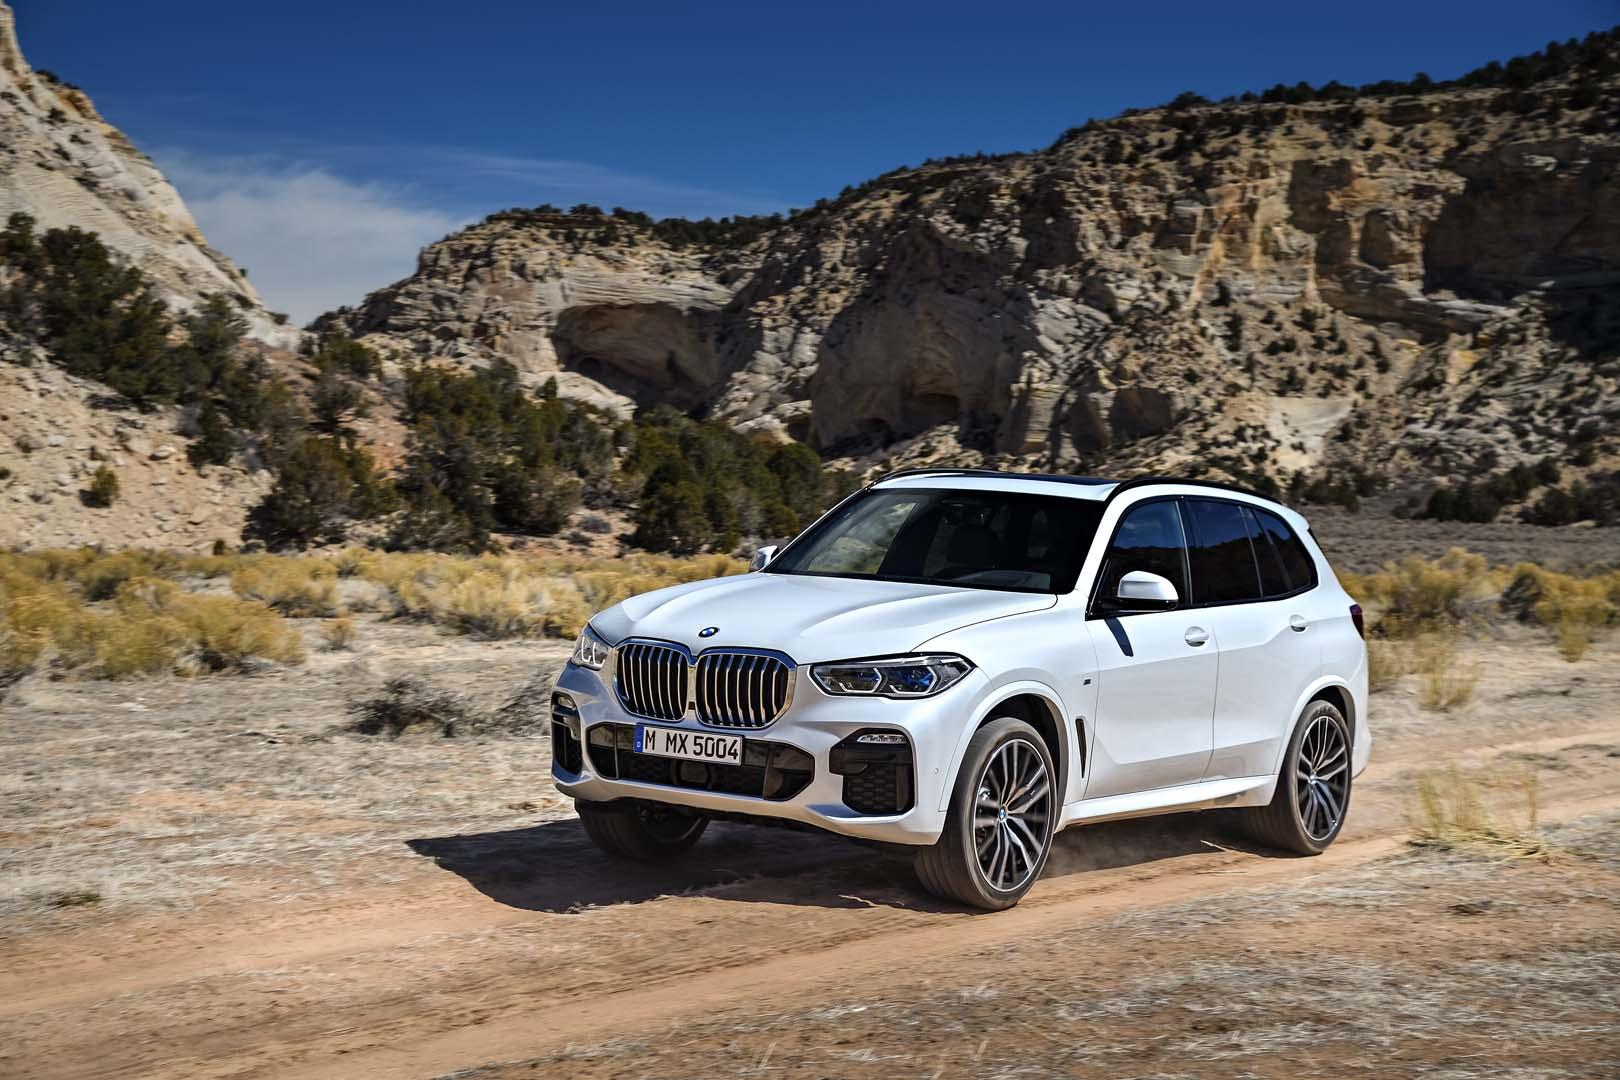 2018 Bmw X5 Gets Diesel Engines And New Design >> The All New Bmw X5 Just 4x4s